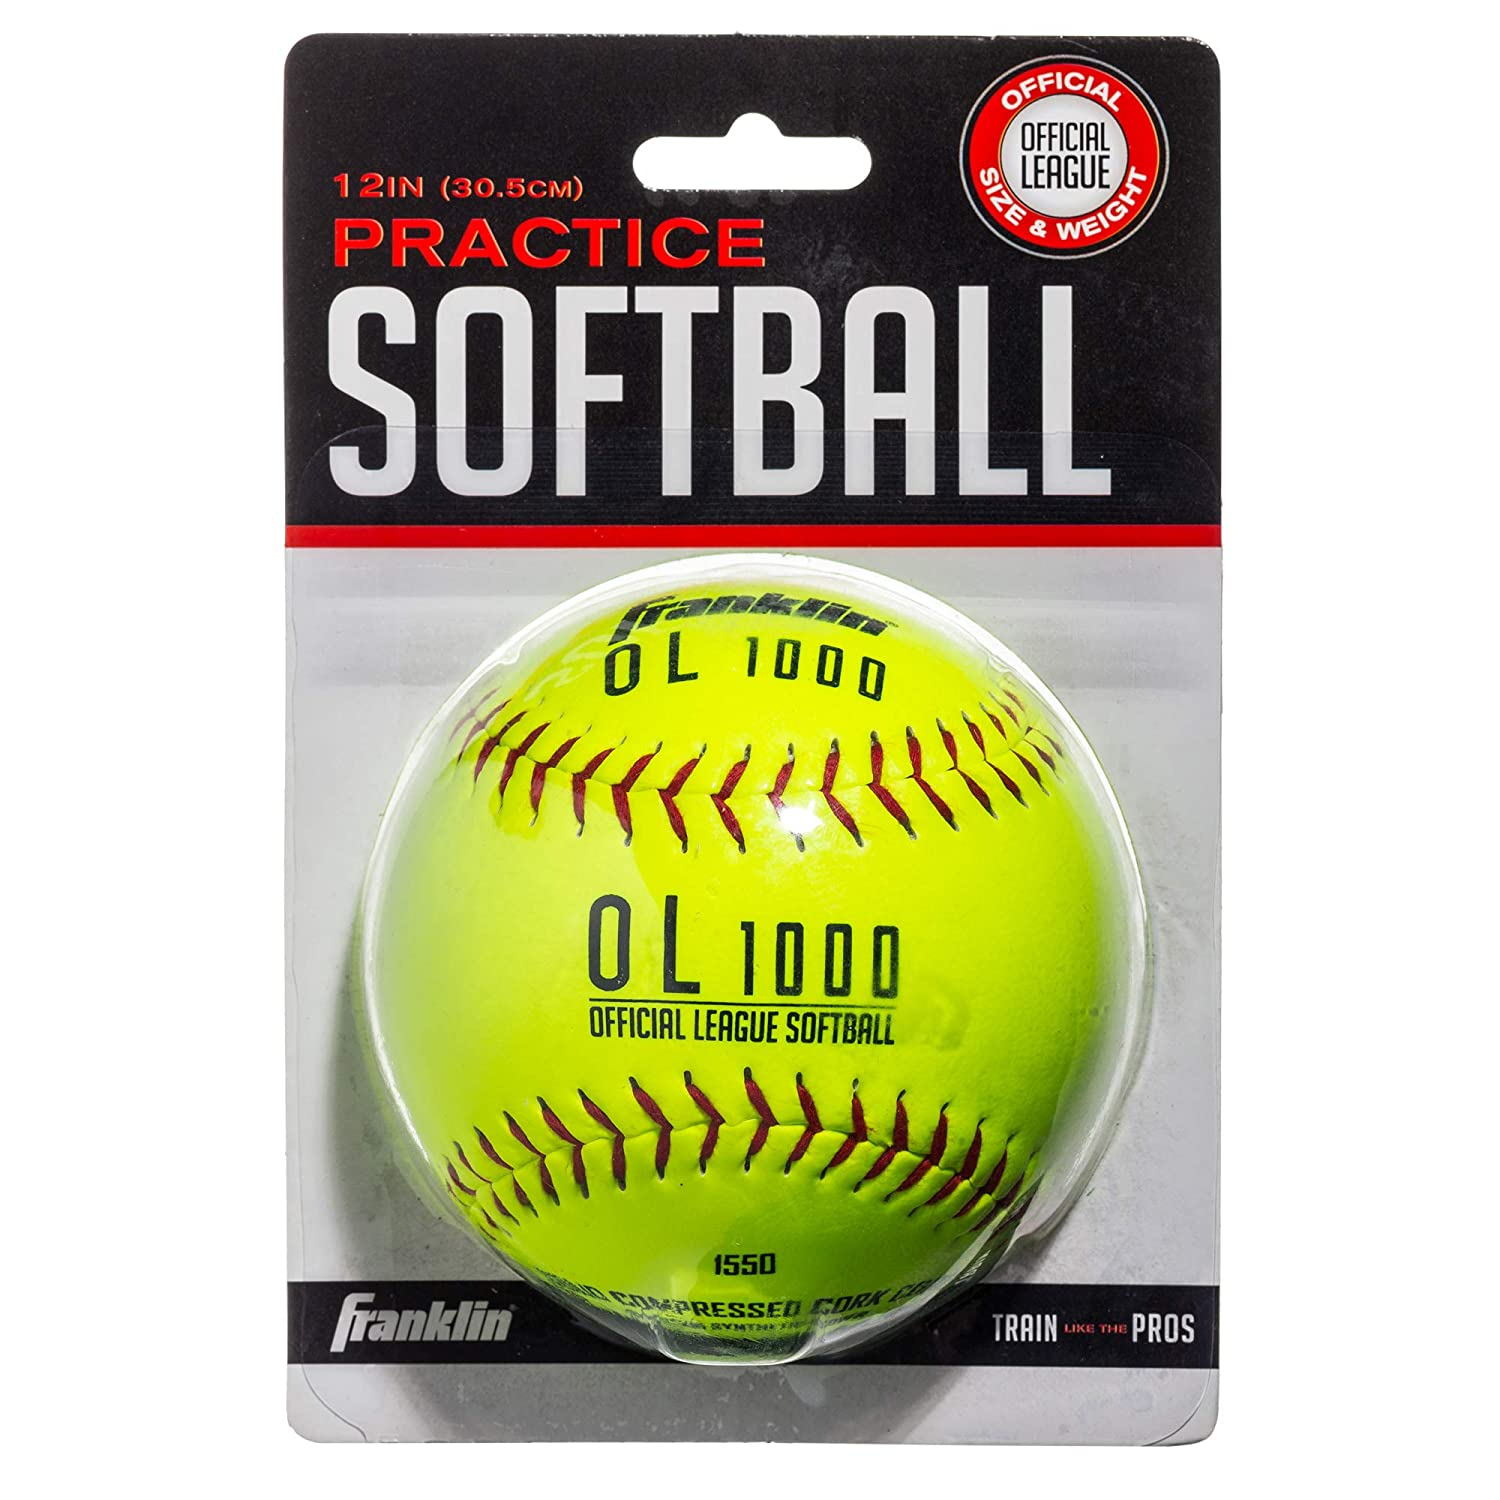 Available in 1 and 4 Pack Perfect For Softball Practice Franklin Sports Practice Softballs Official Size and Weight Softball